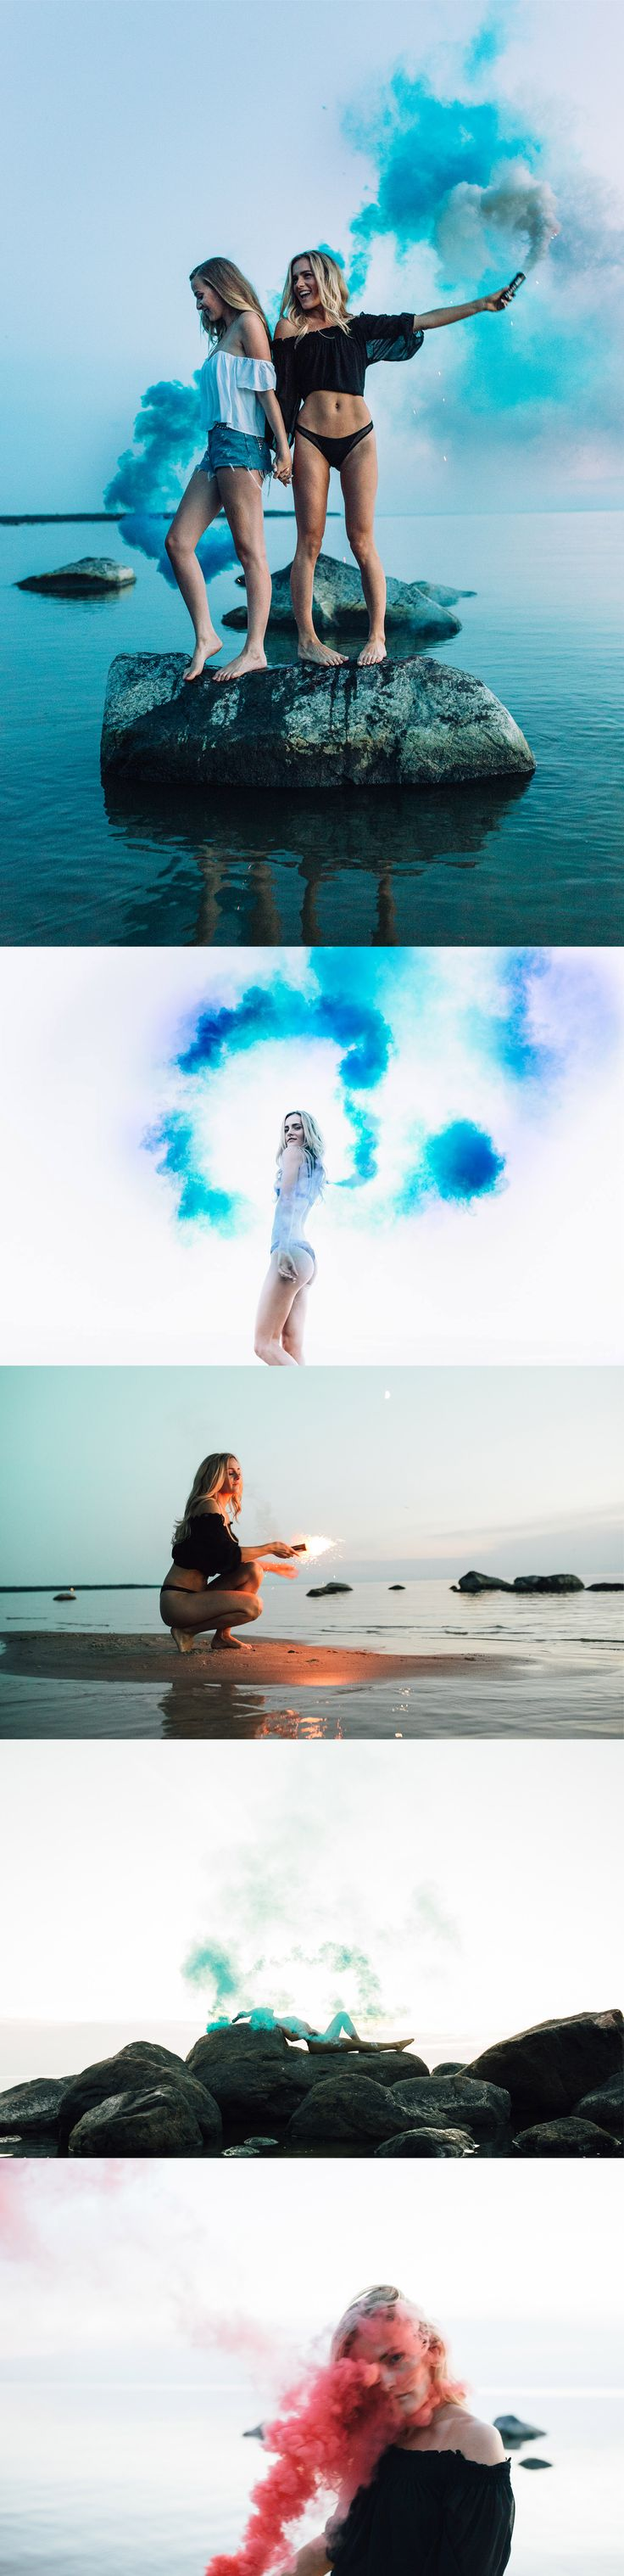 Smoke Bomb Photoshoot Beach - Pantel Photography